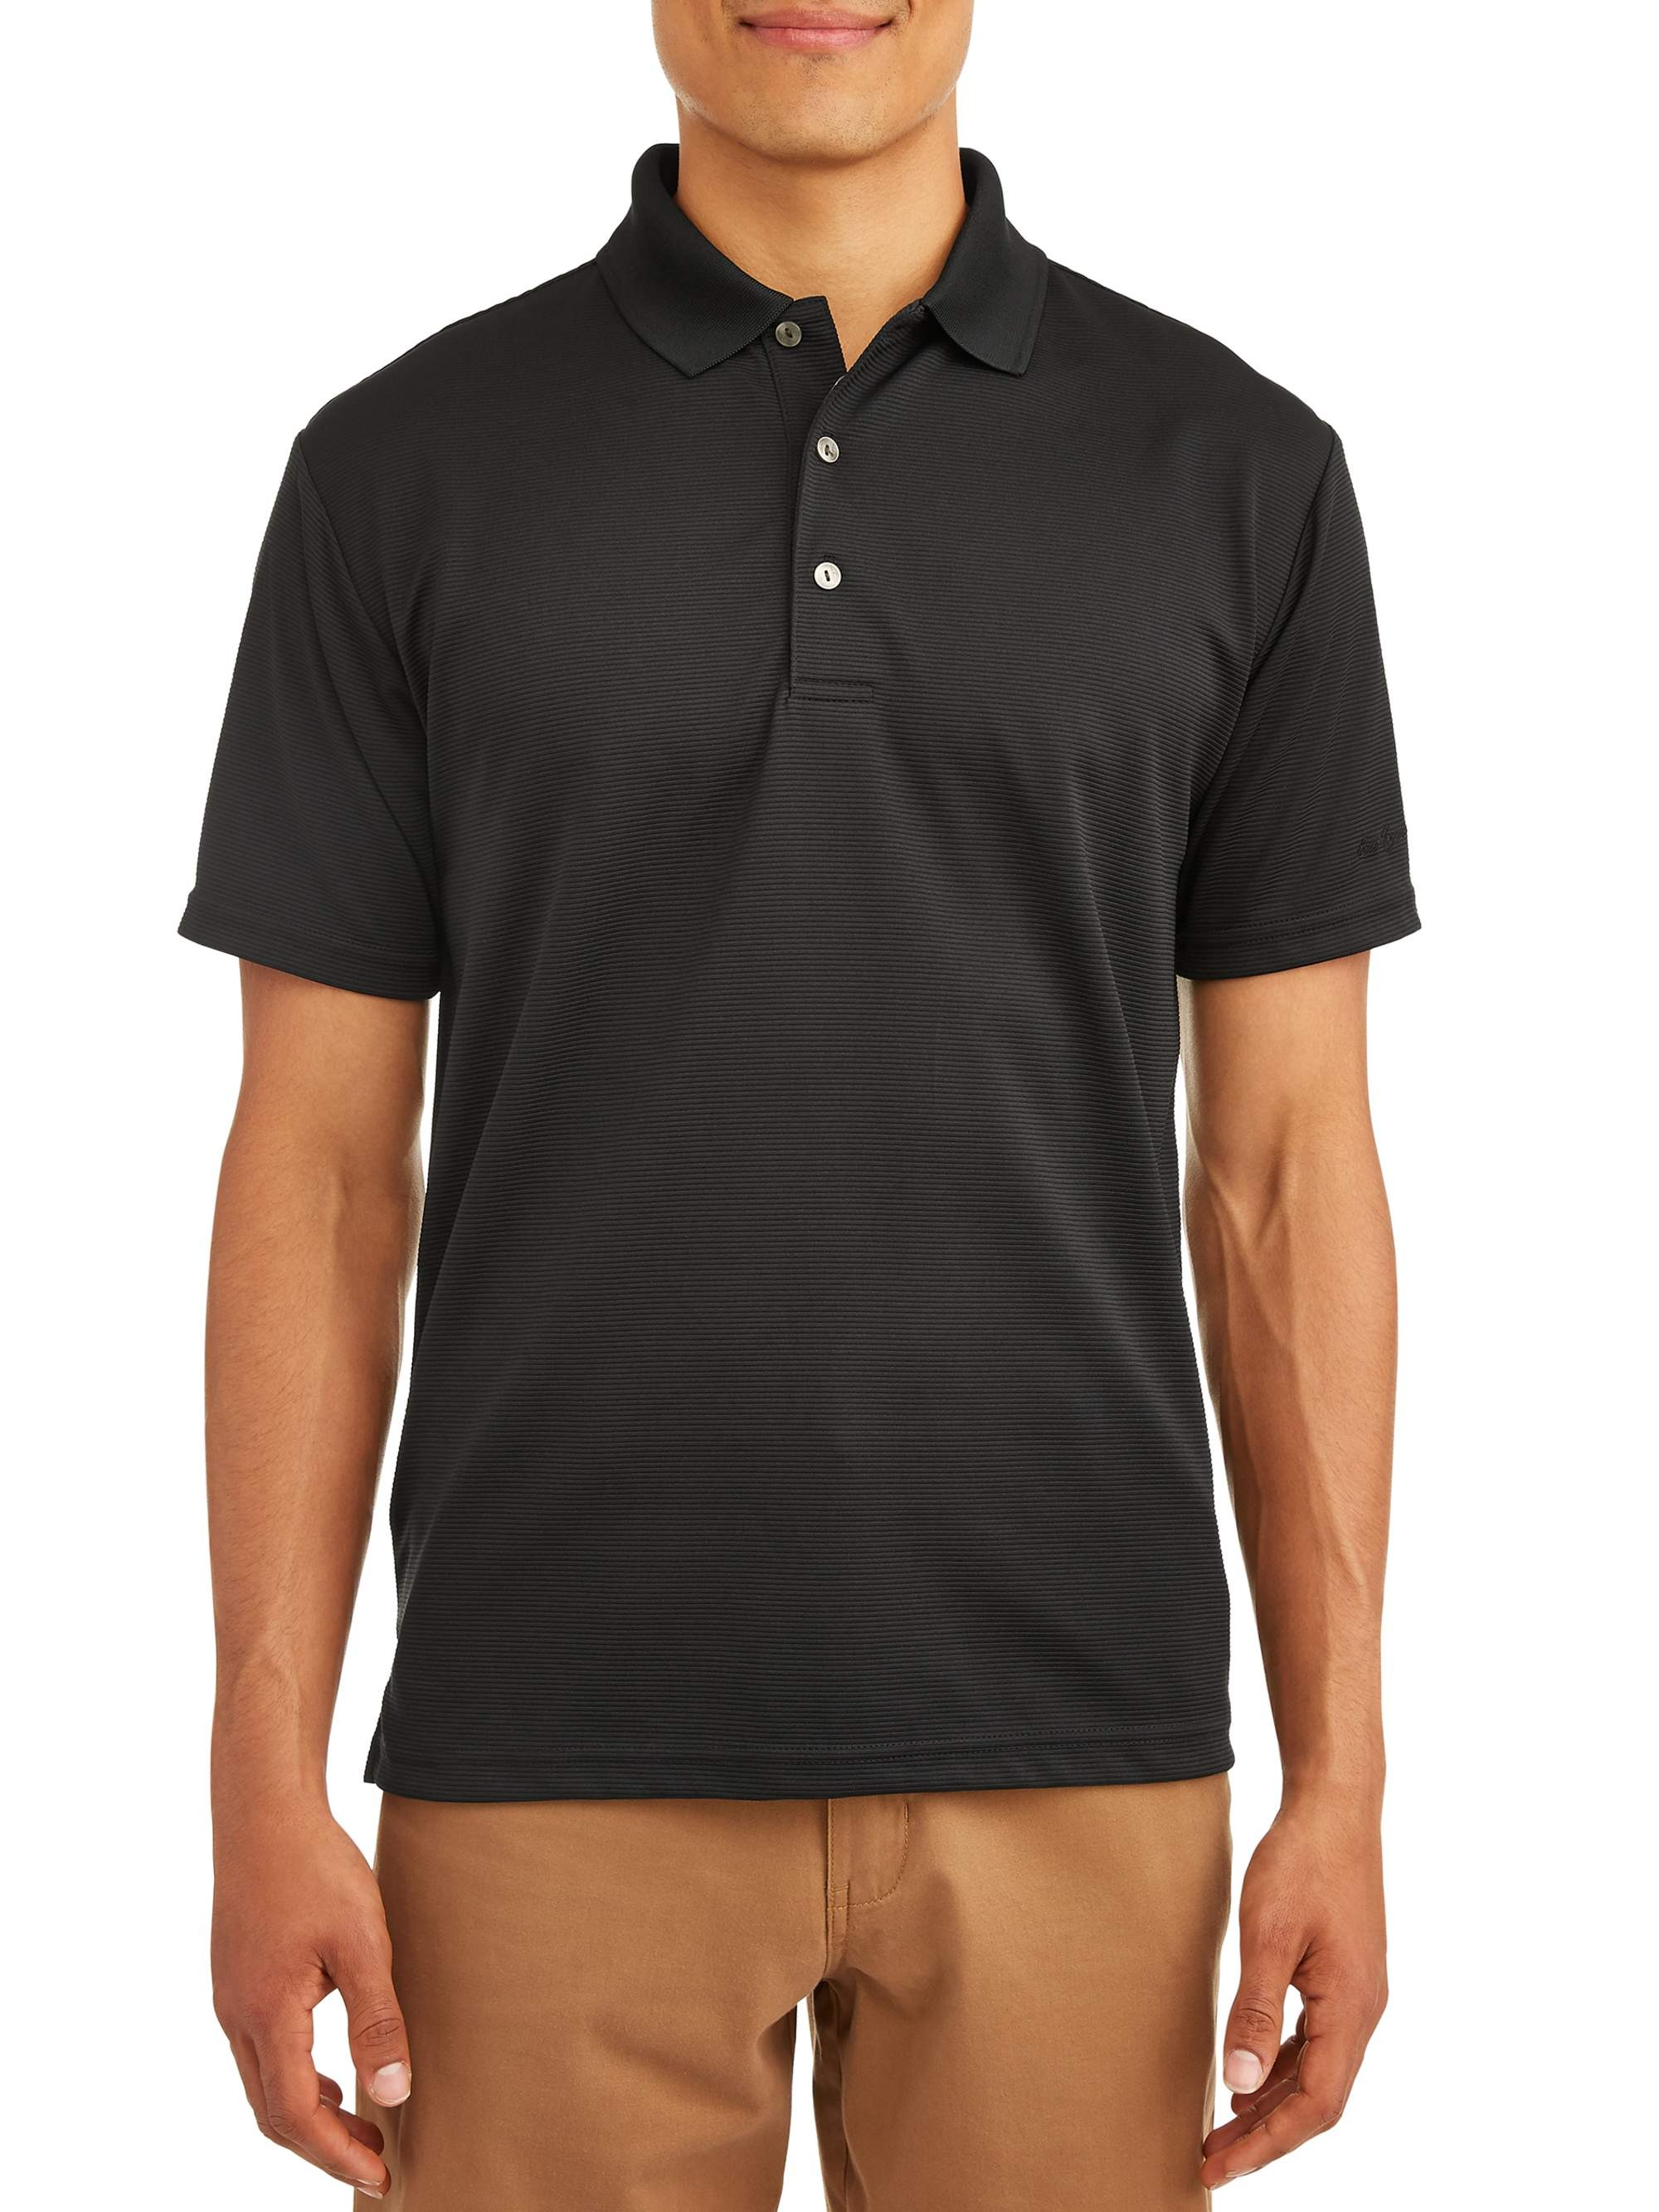 Ben Hogan Men's Performance Easy Care Solid Short Sleeve Polo Shirt